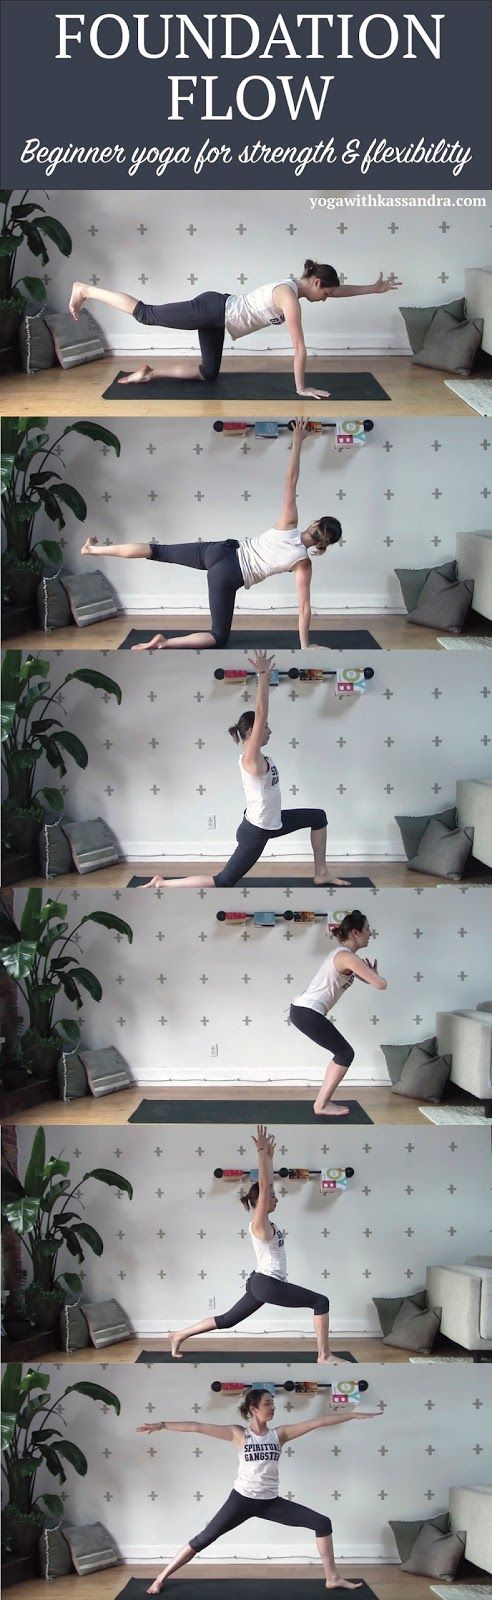 6 Beginner Poses for Strength and Flexibility